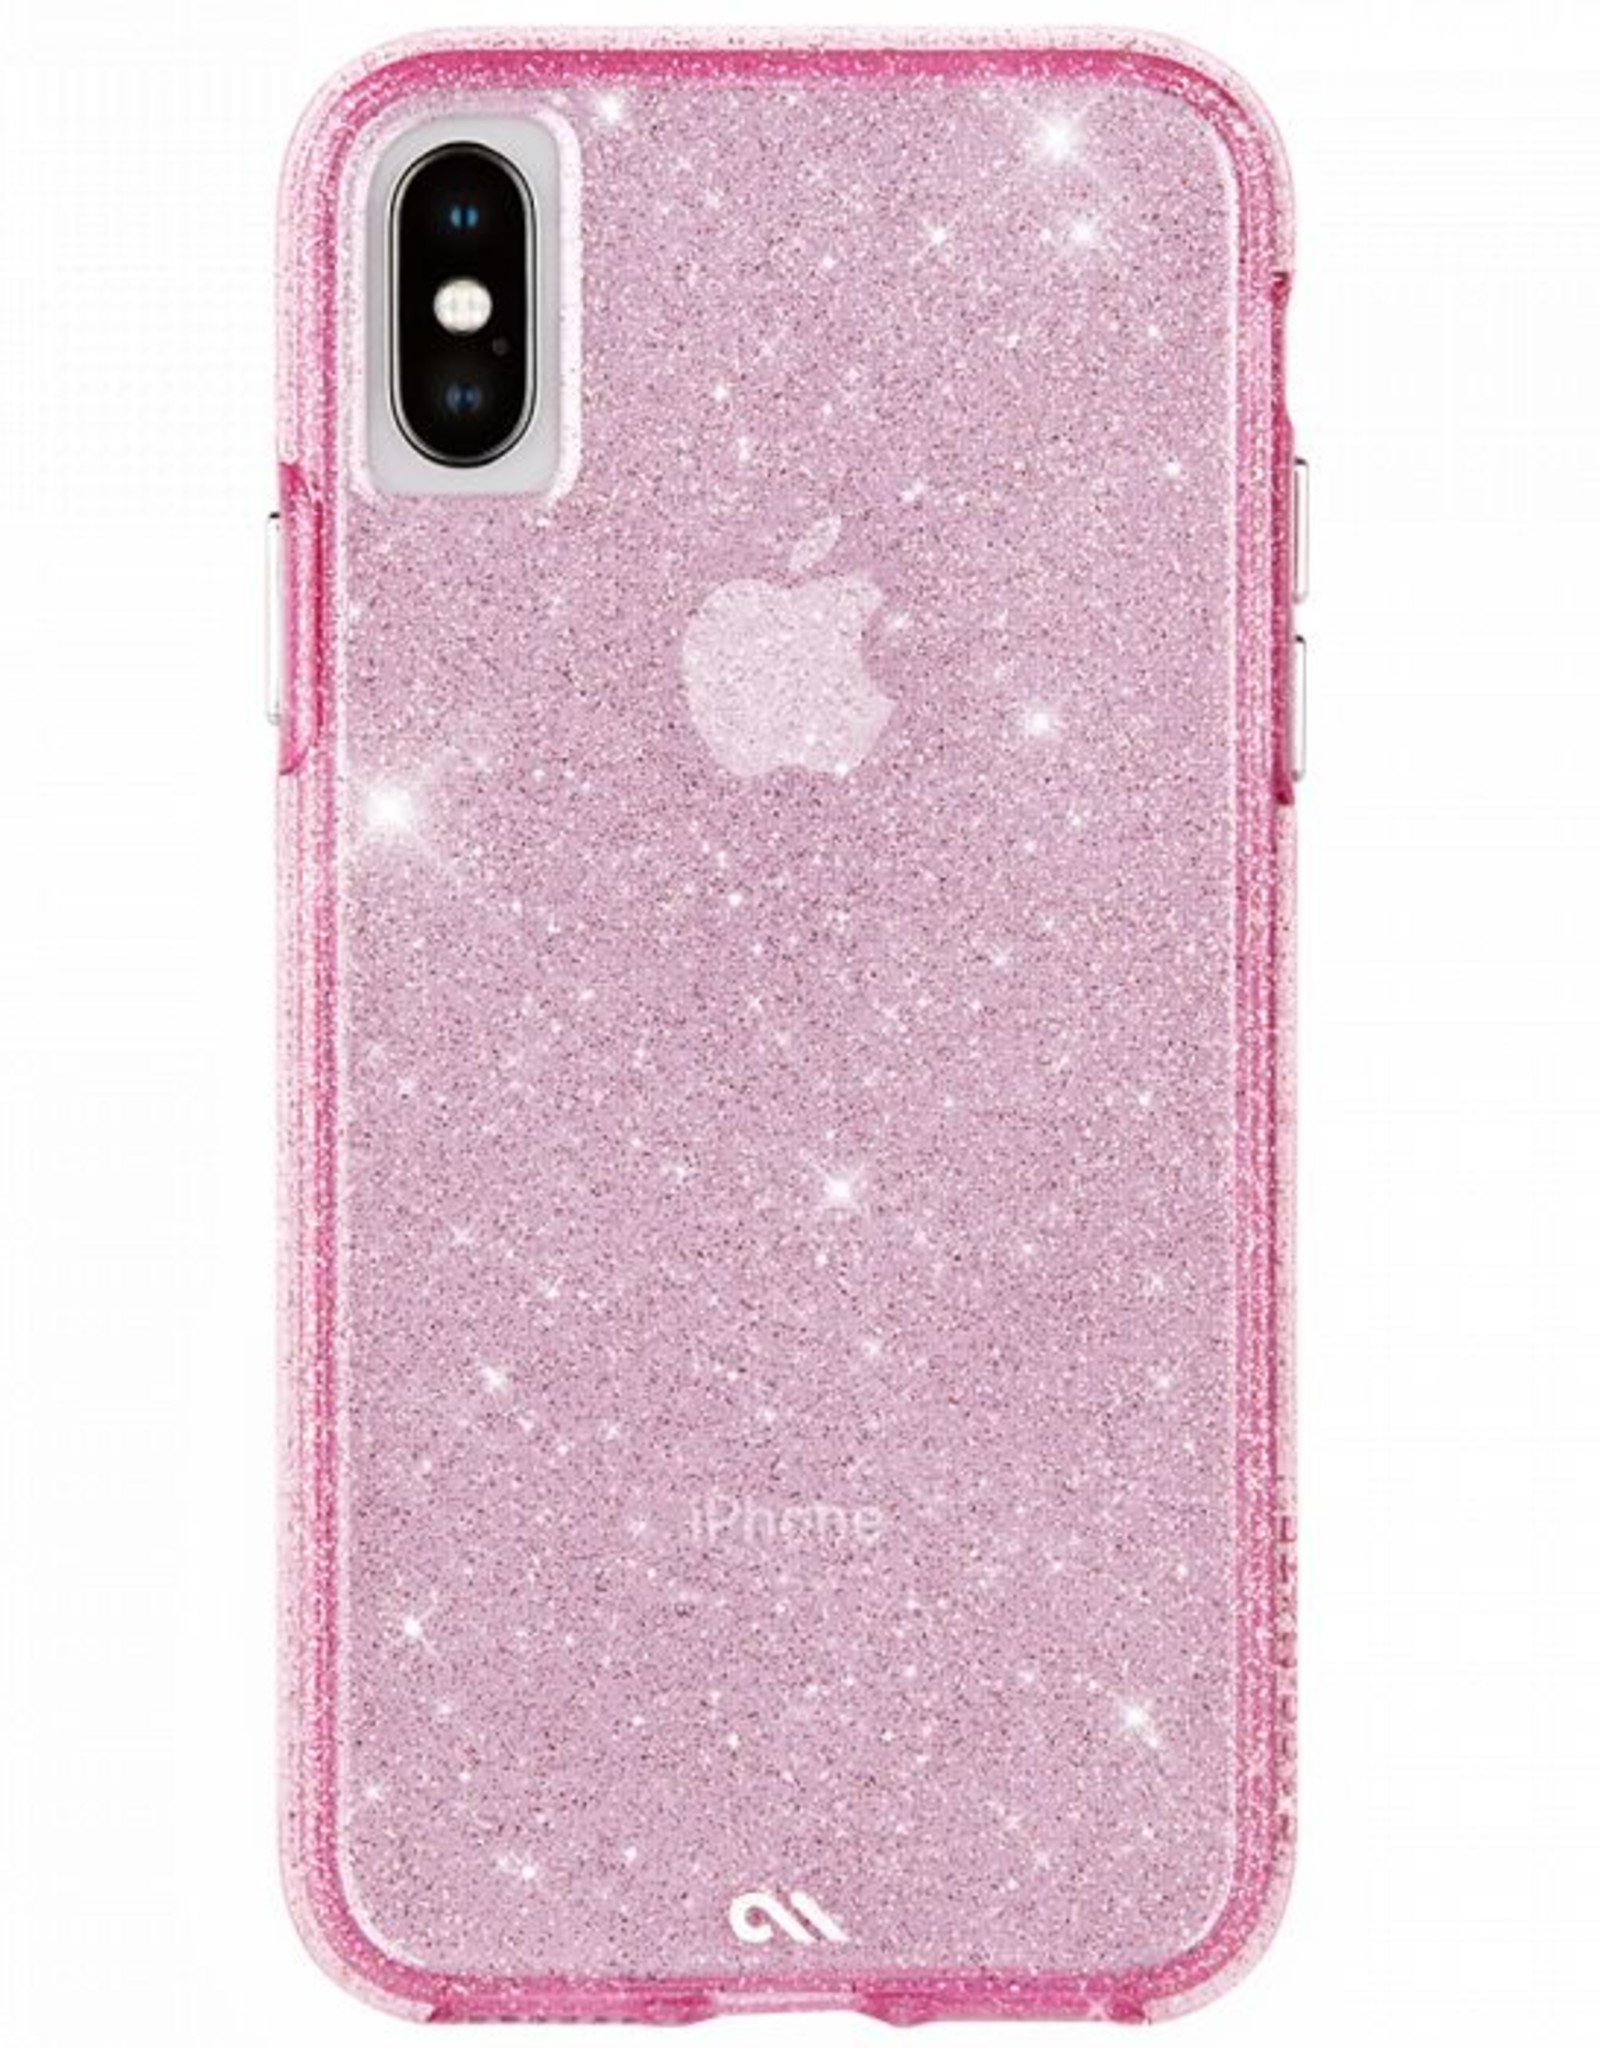 Case-Mate Case-mate | iPhone X/Xs Pink Sheer Crystal case | 15-03523